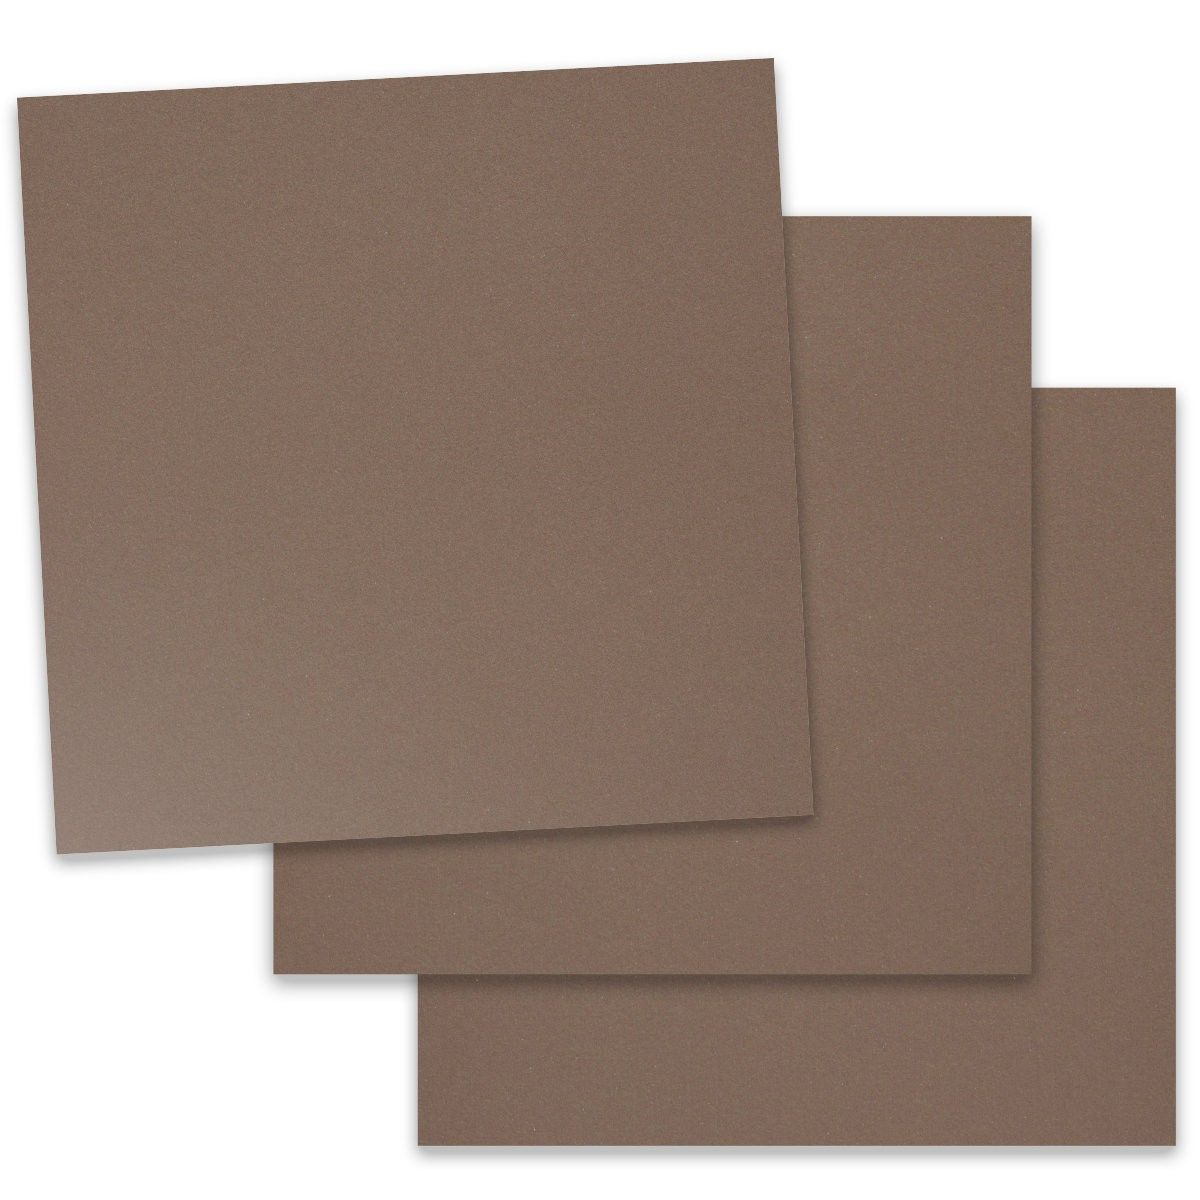 Curious Metallic Chestnut 12x12 32 80lb Text 50 Pk In 2020